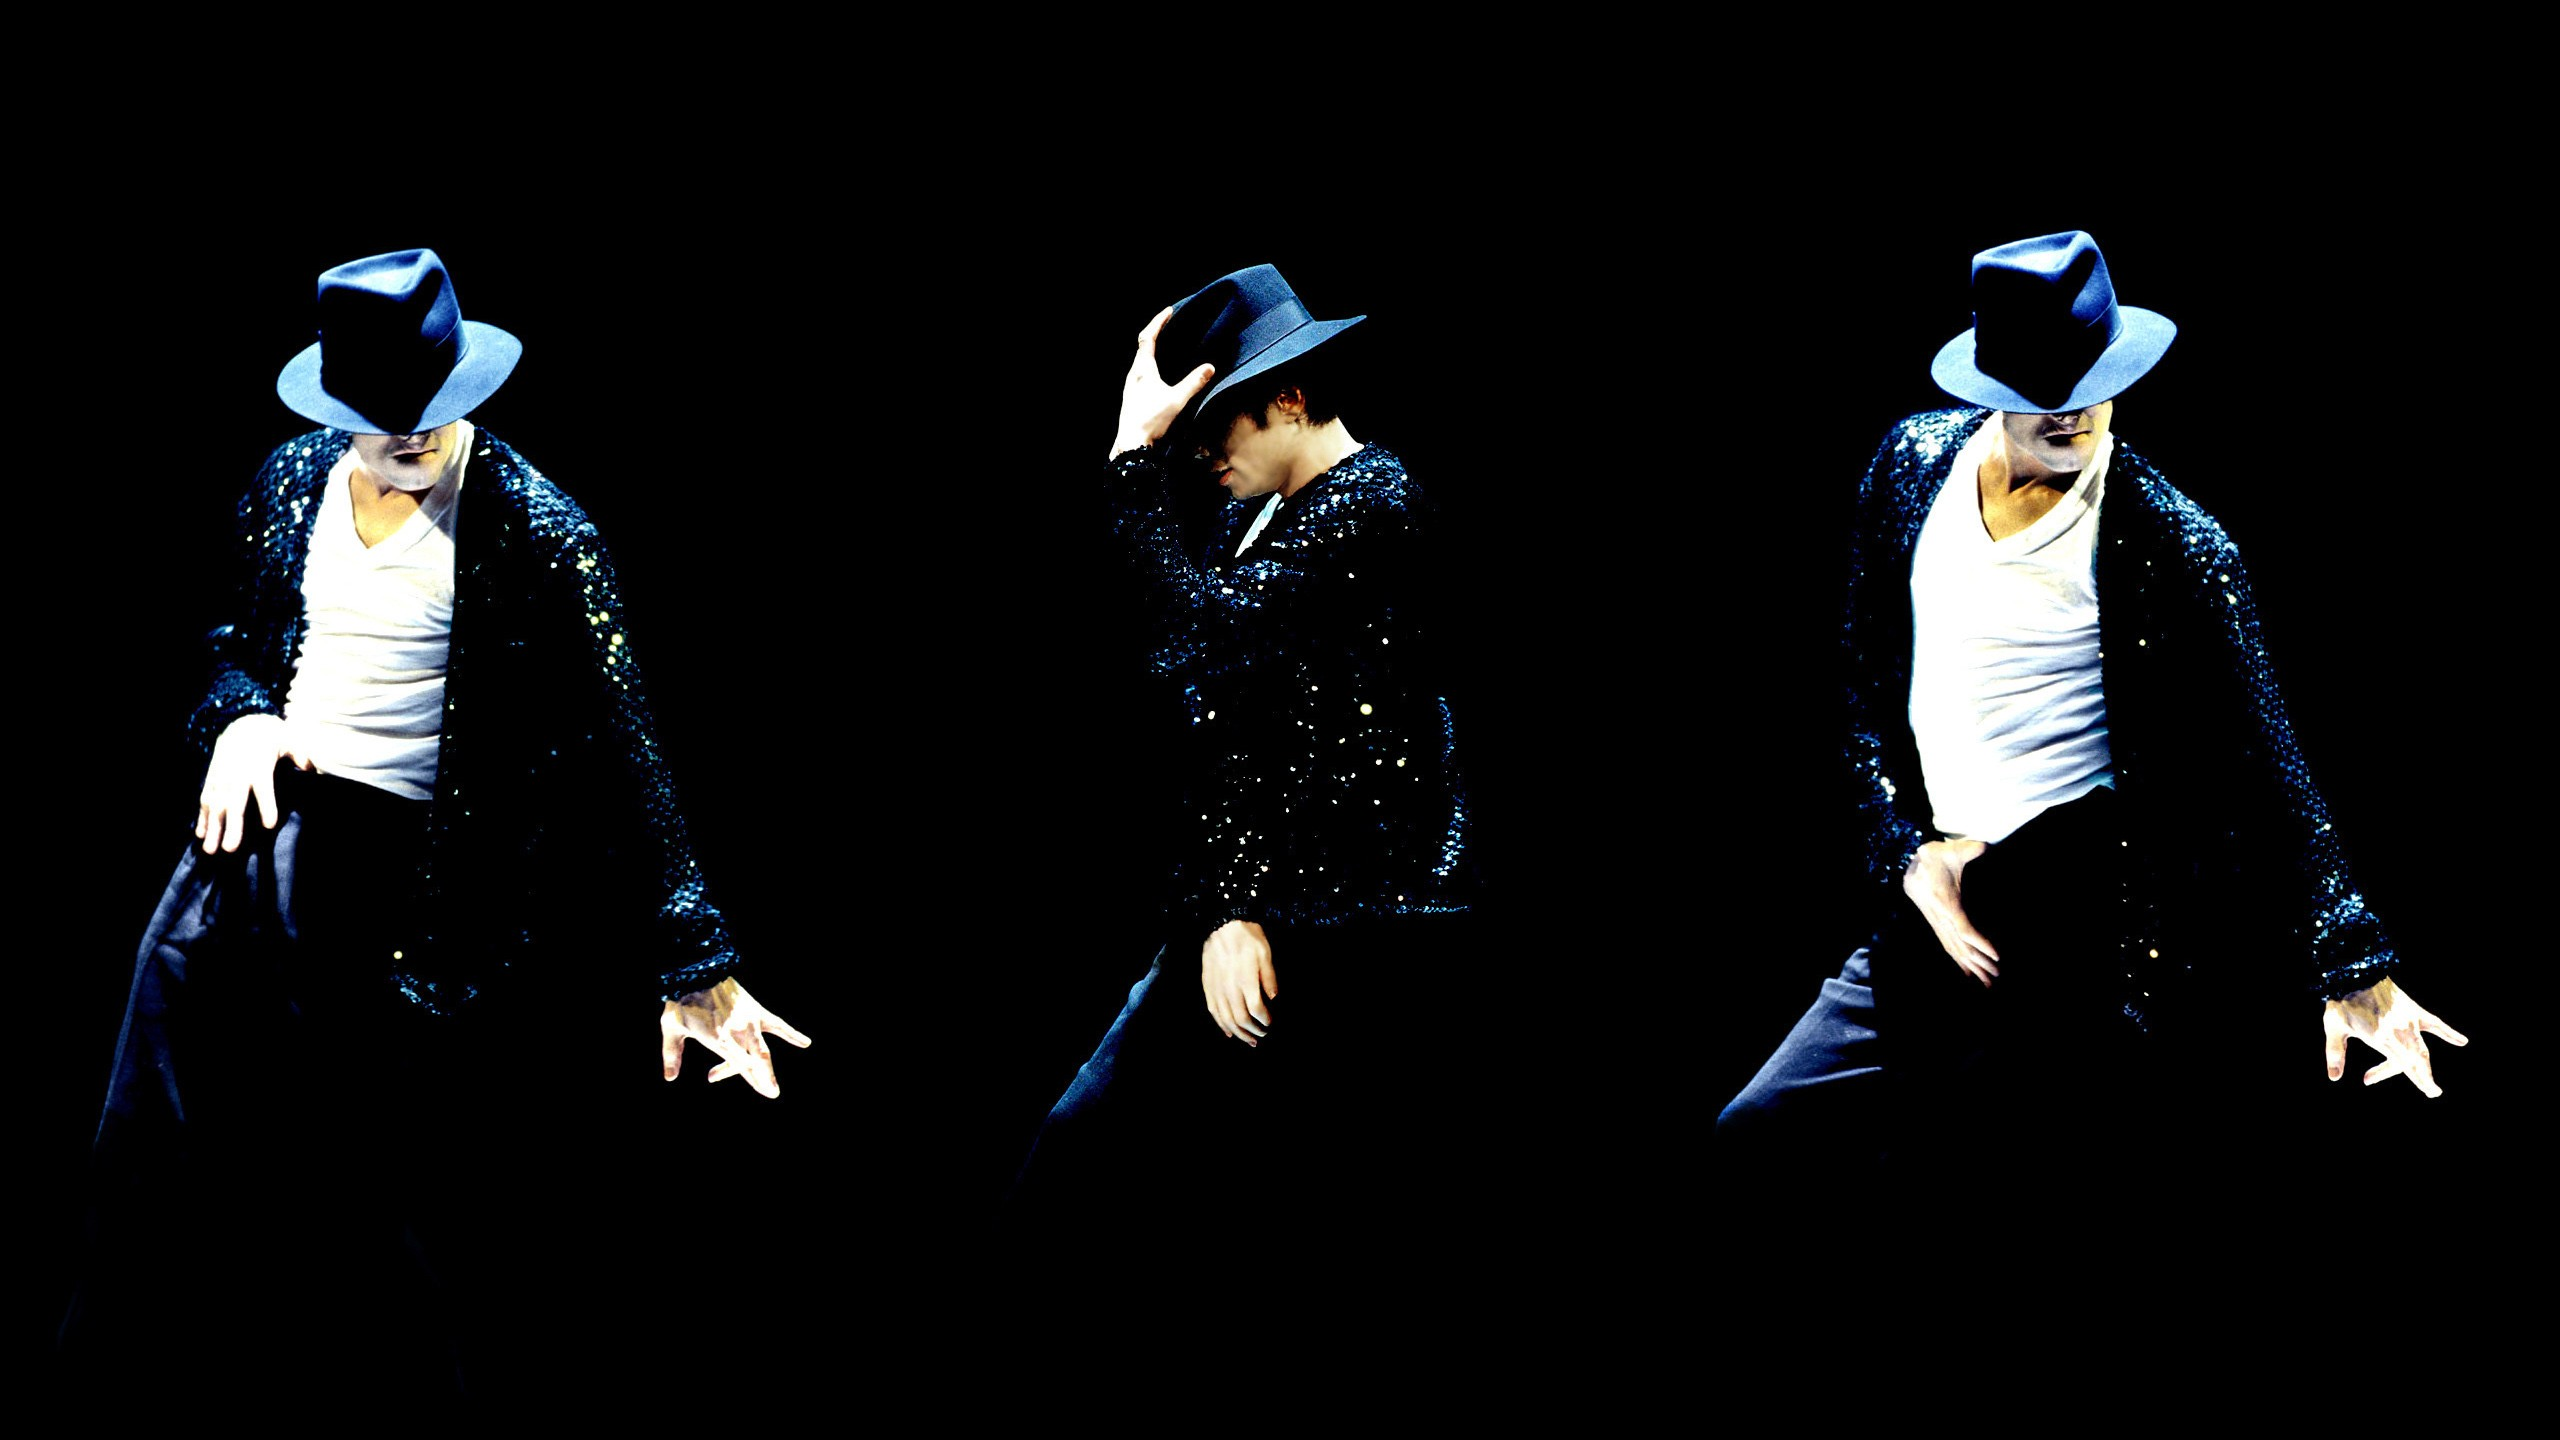 3d Wallpaper 480x800 2048x1152 Michael Jackson Doing Dance 2048x1152 Resolution